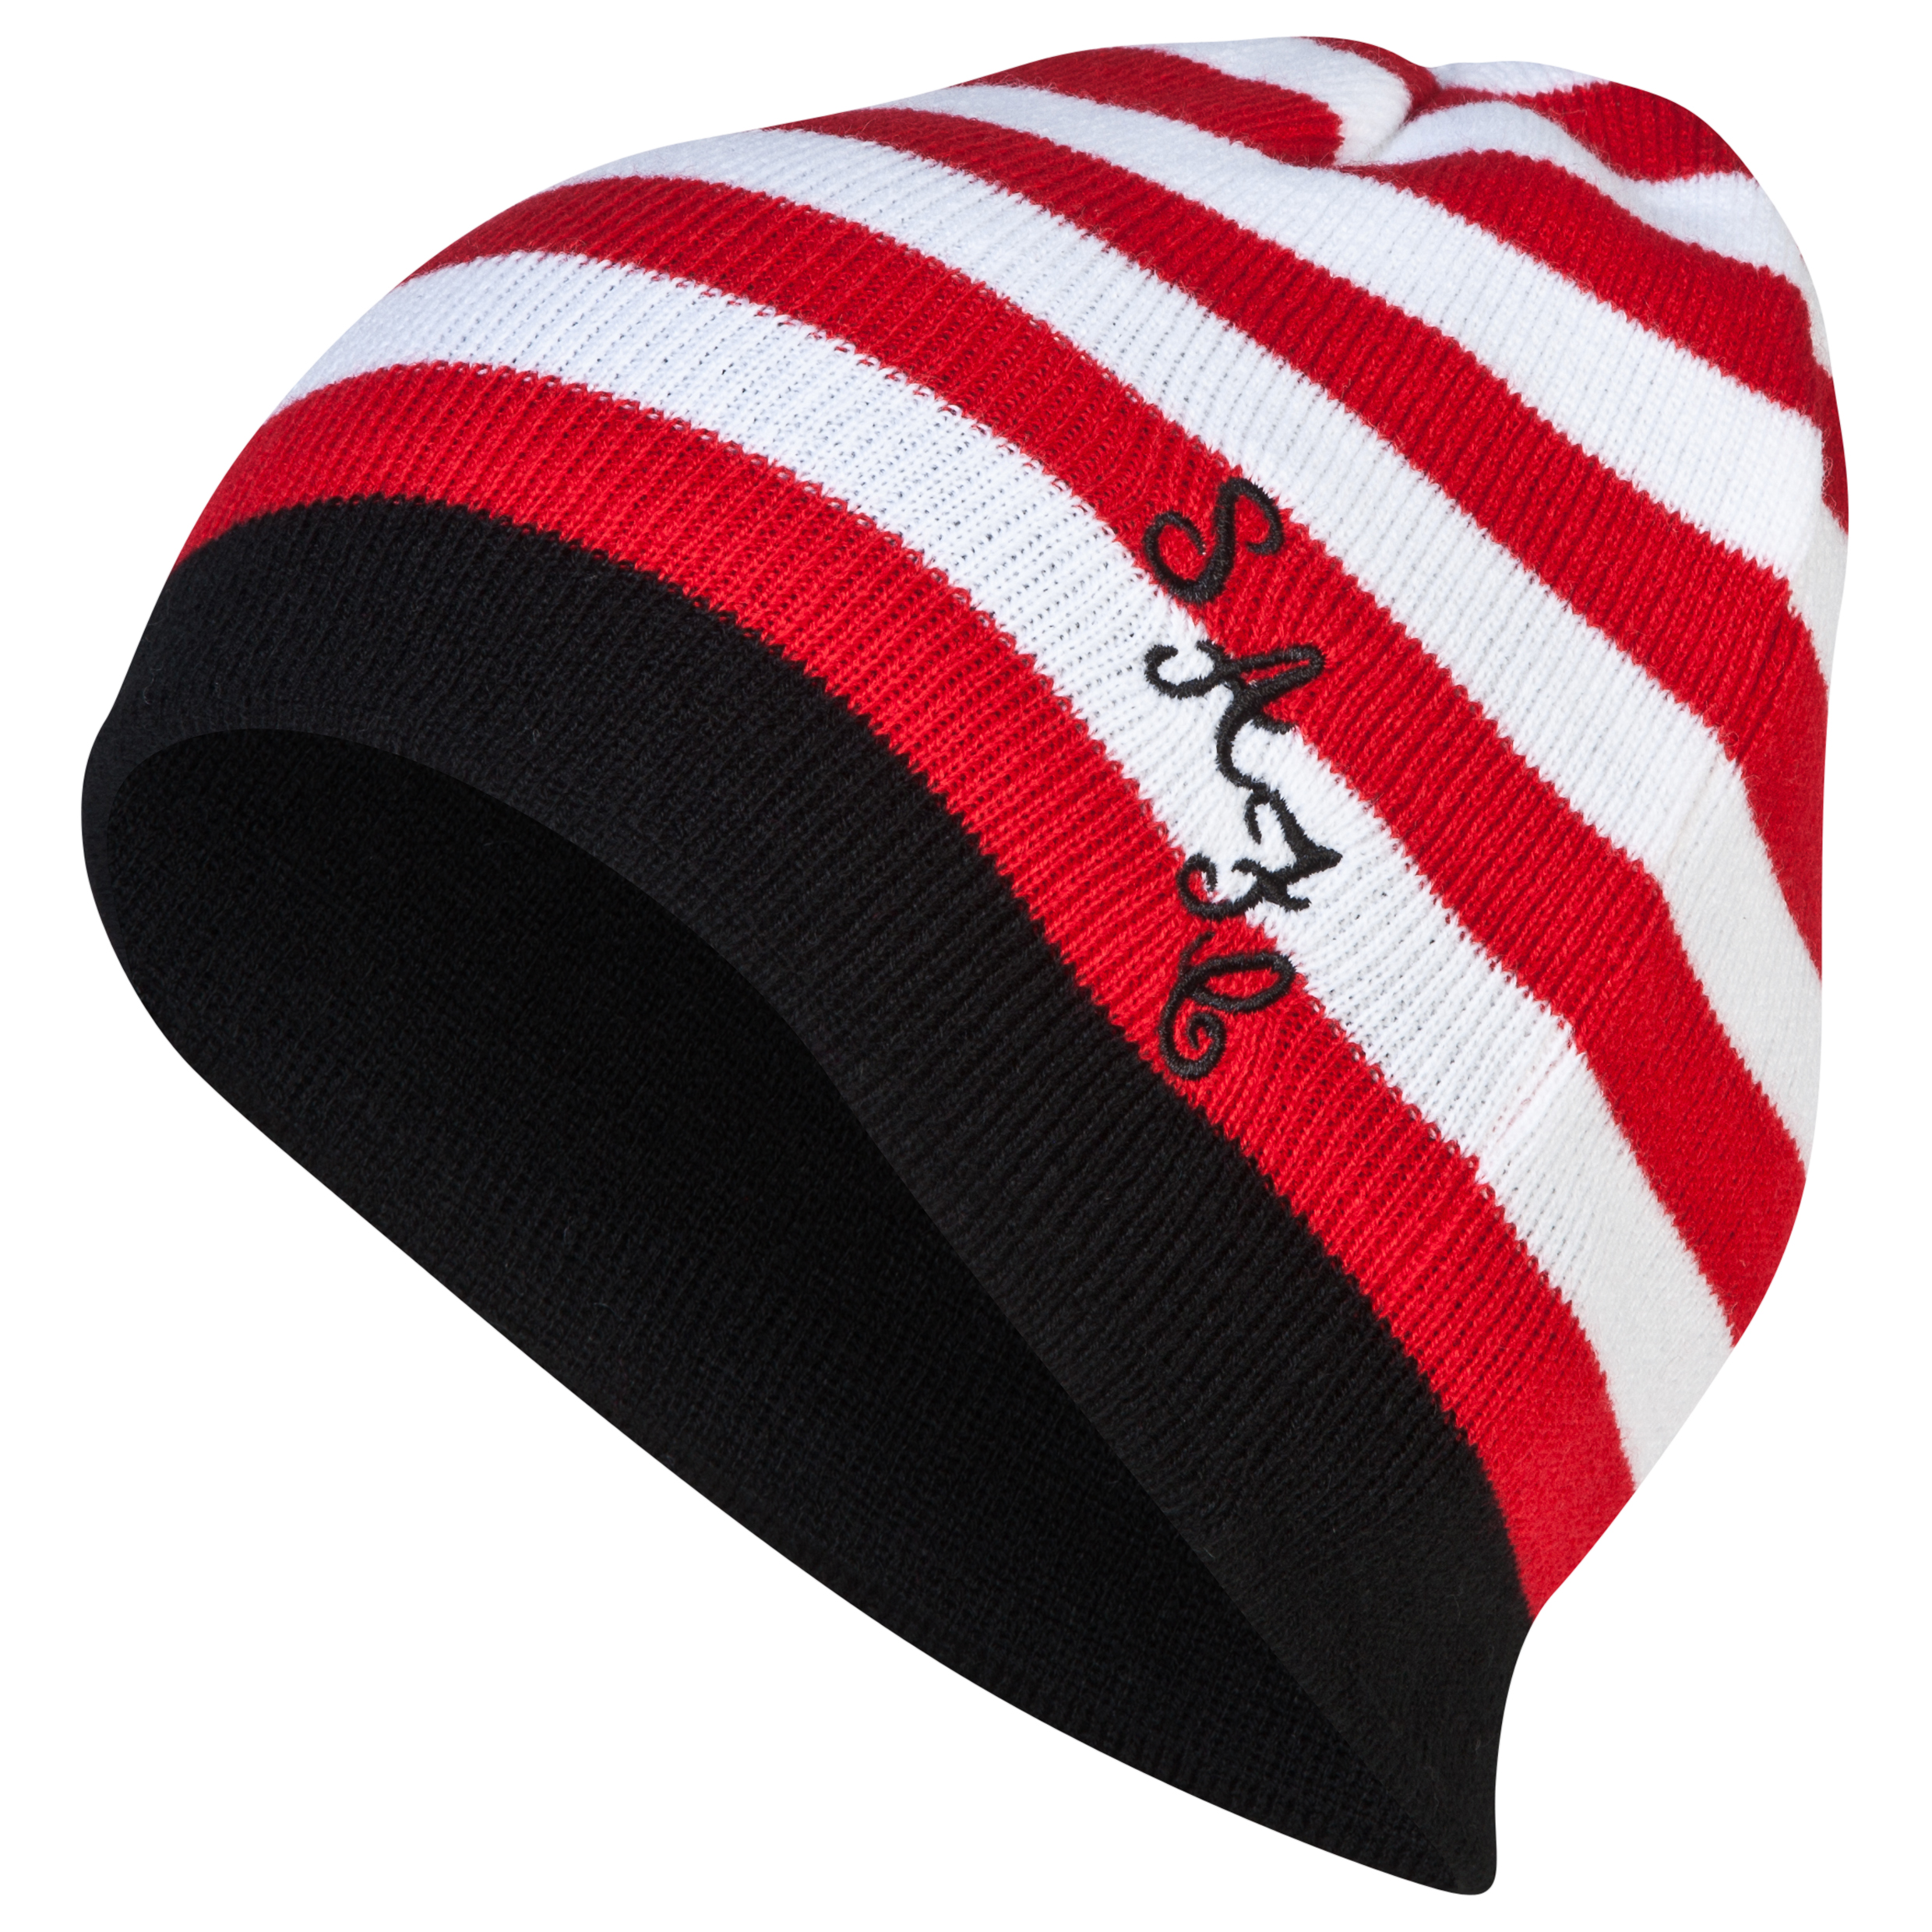 Sunderland Retro Hat Red